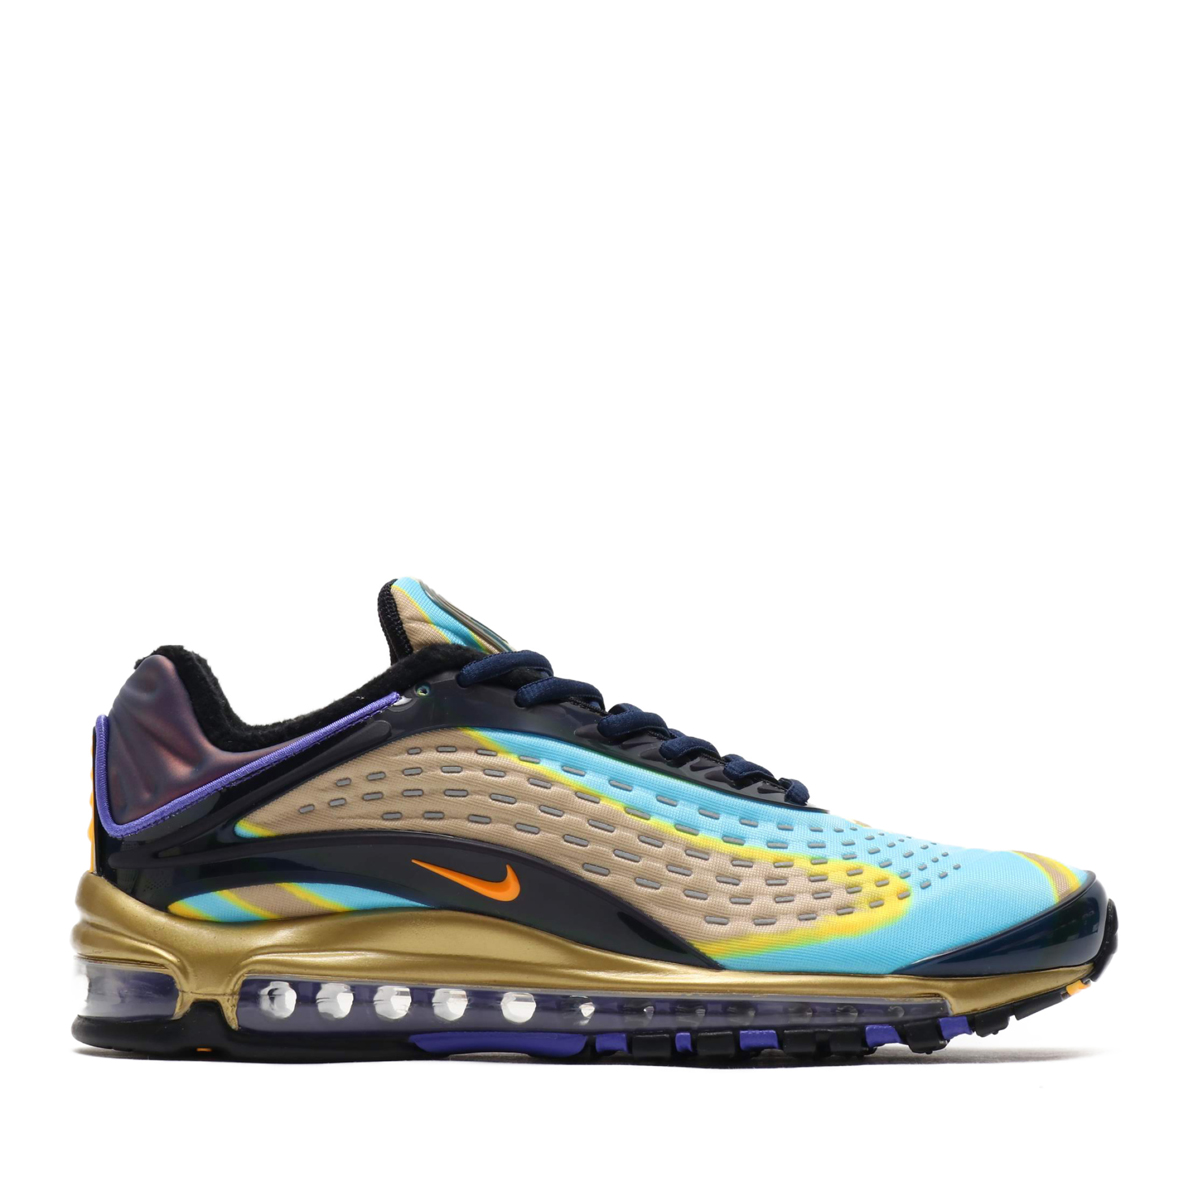 low priced 022fe e32f9 NIKE AIR MAX DELUXE (MIDNIGHT NAVY LASER ORANGE) (Kie Ney AMAX deluxe ...